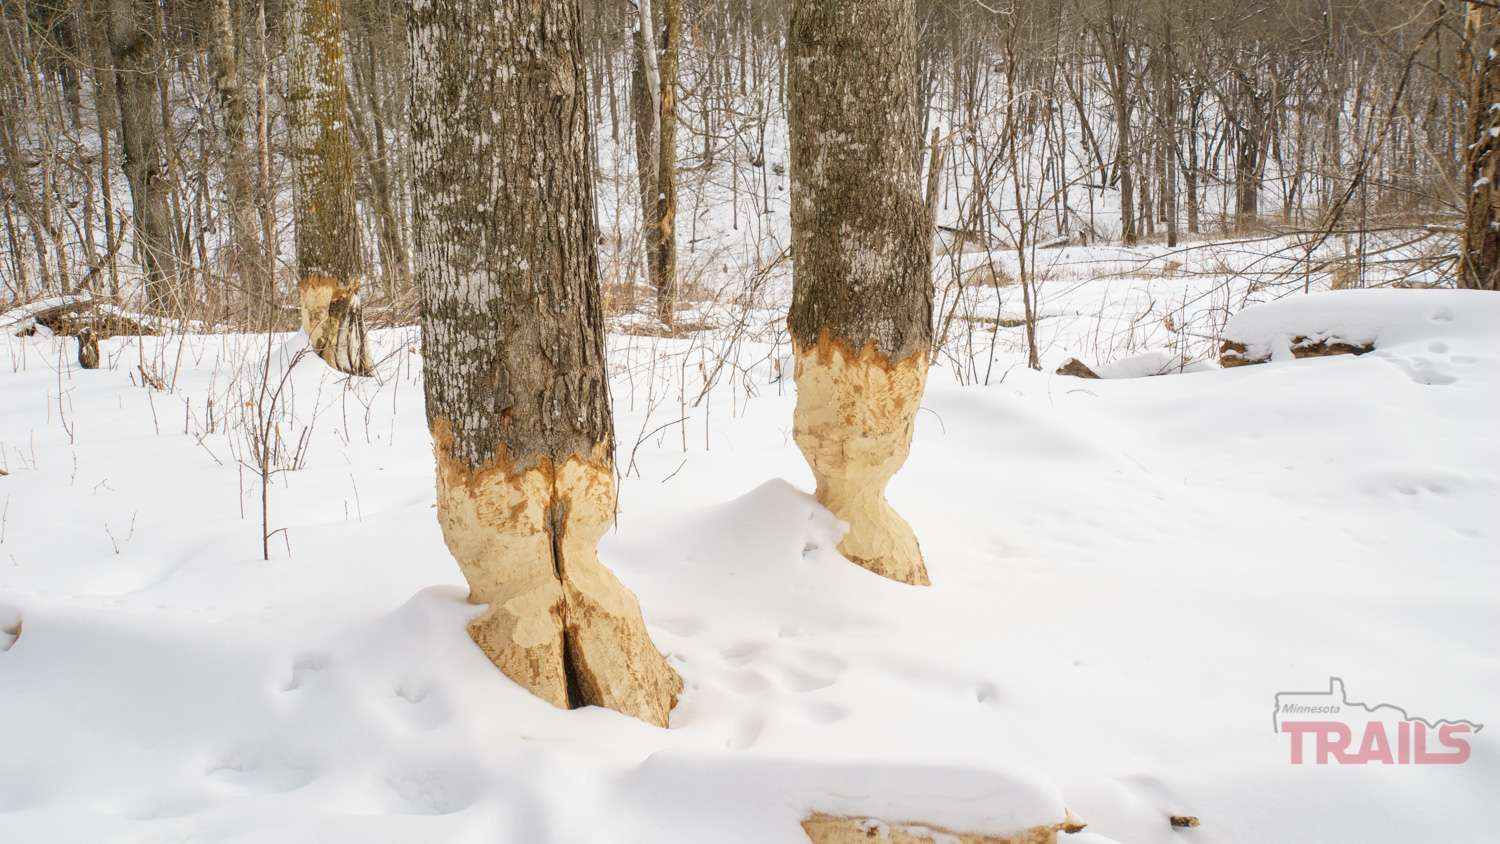 Tree trunks chewed on by beavers